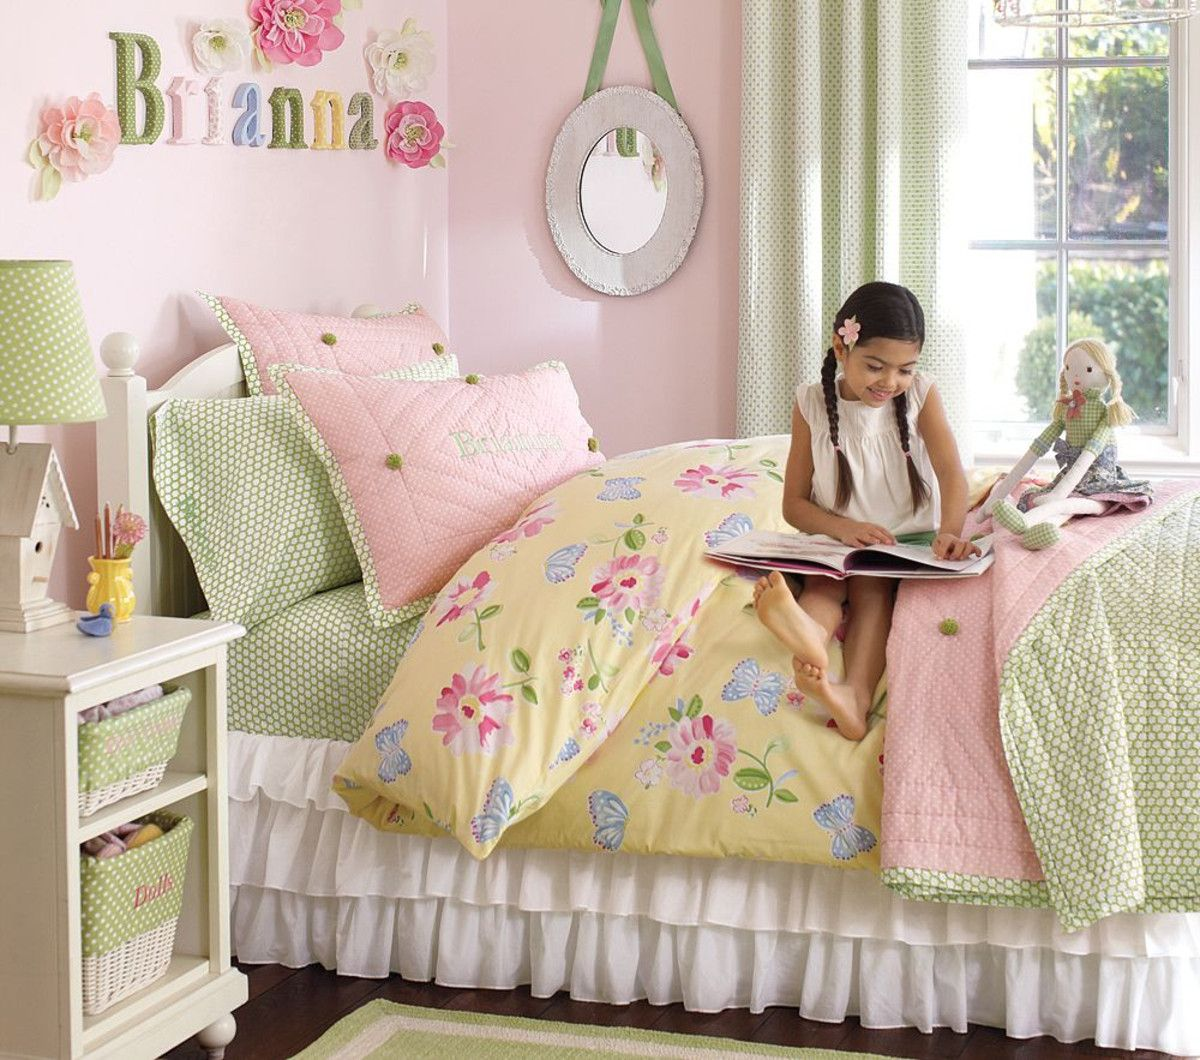 Pottery Barn Girls Bedrooms Catalina Bed Pottery Barn Kids Australia Girls Bedrooms